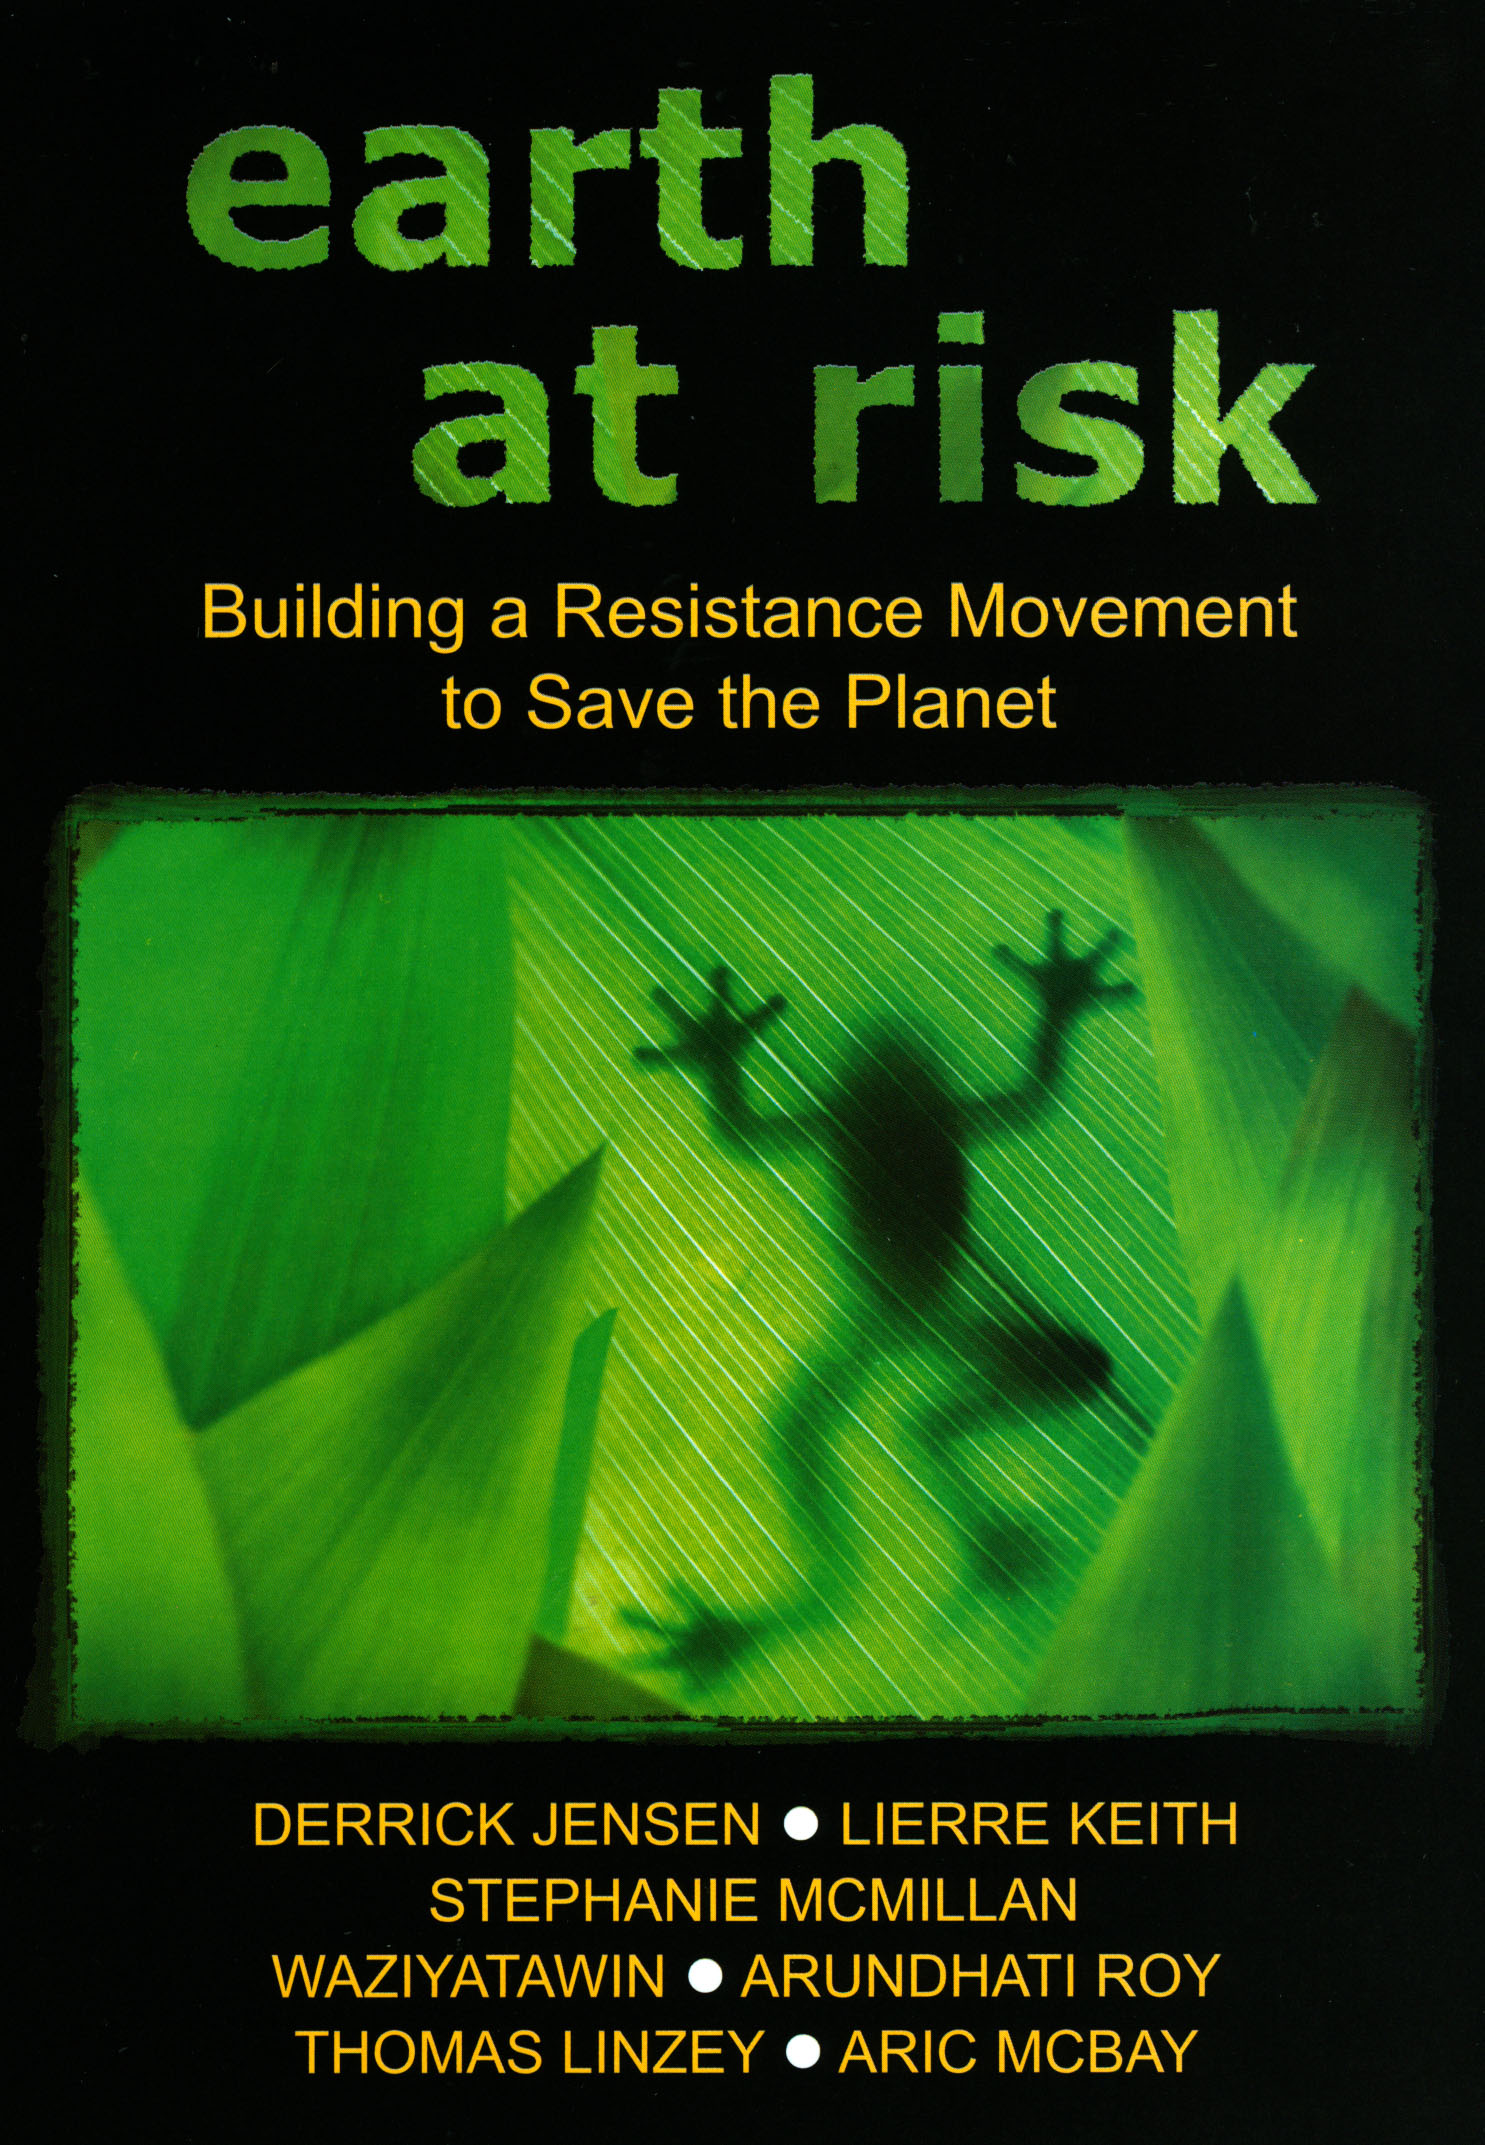 Earth at Risk: Building a Resistance Movement to Save the Planet